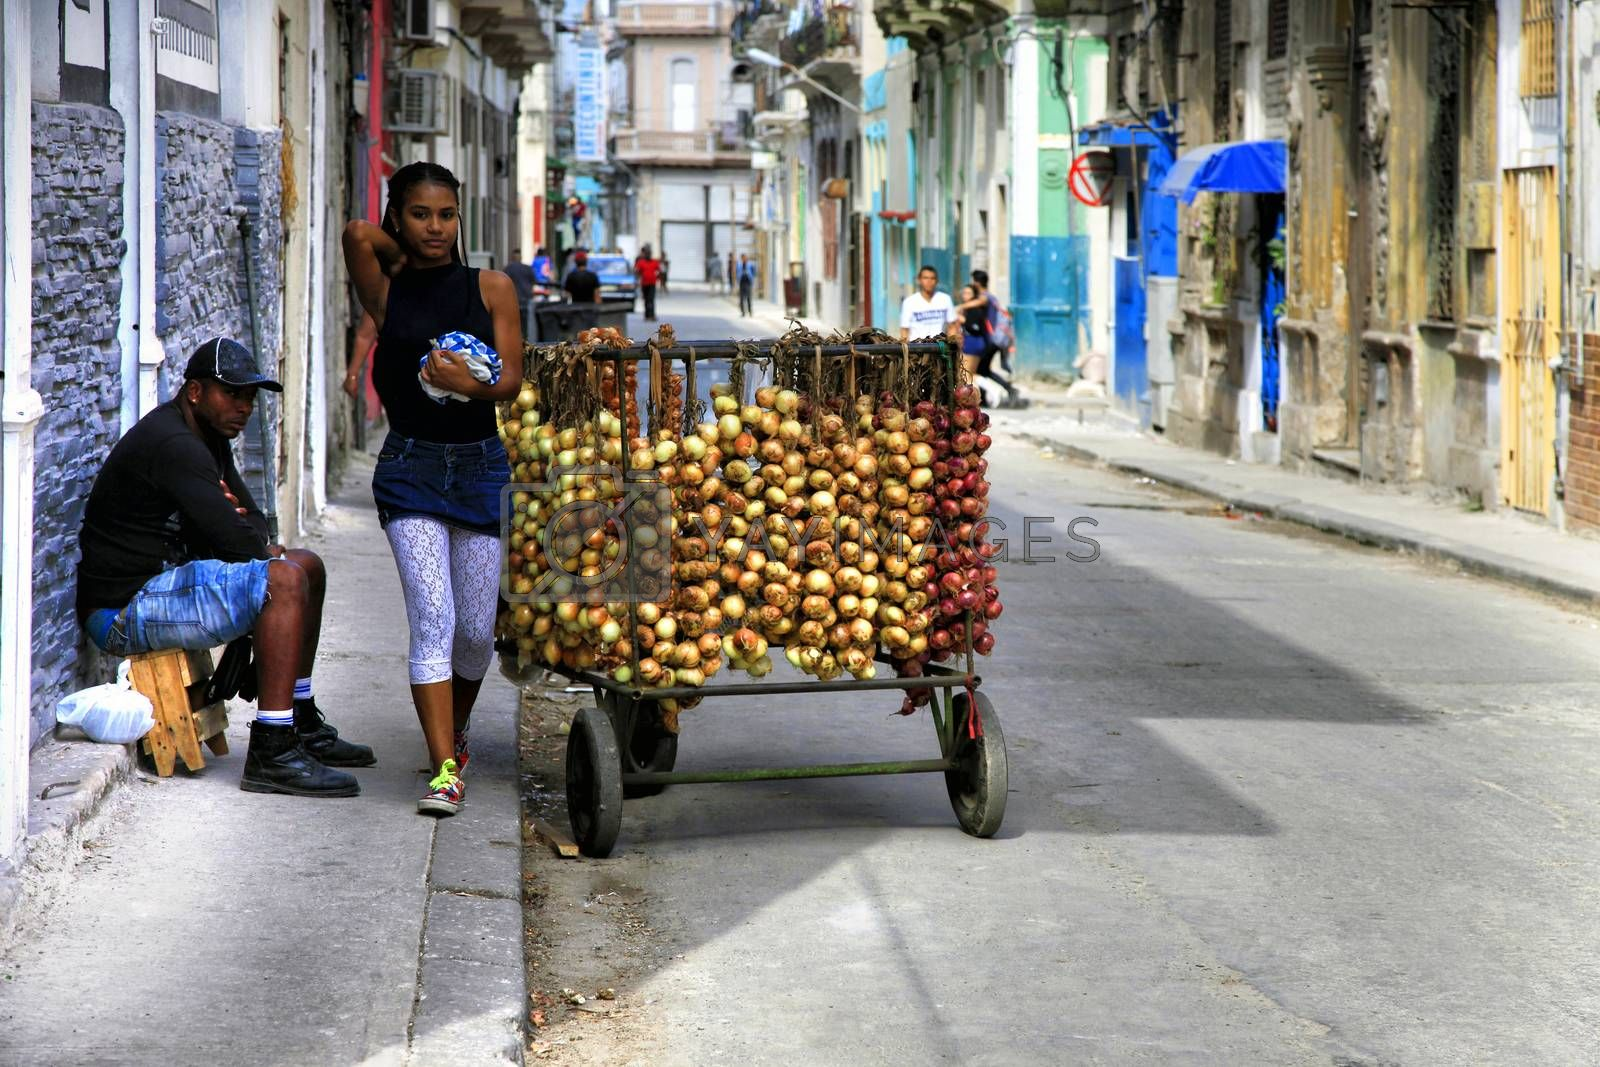 Selling onions on the street in Old Havana, Cuba by friday